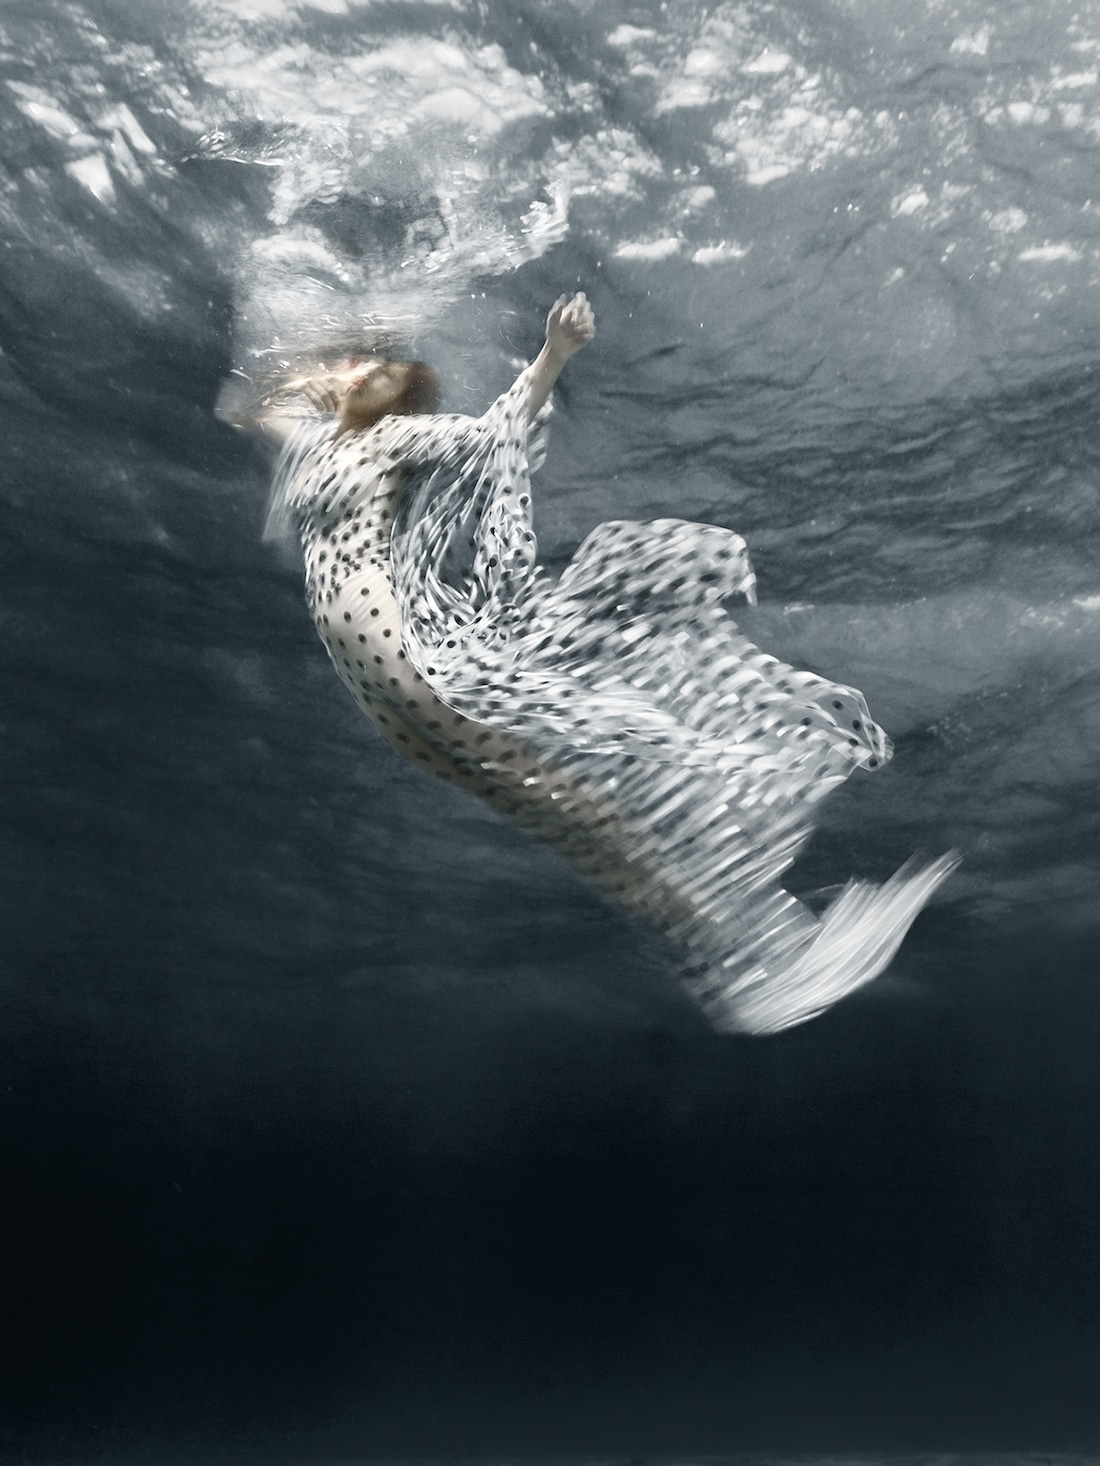 Underwater Portraits by Barbara Cole